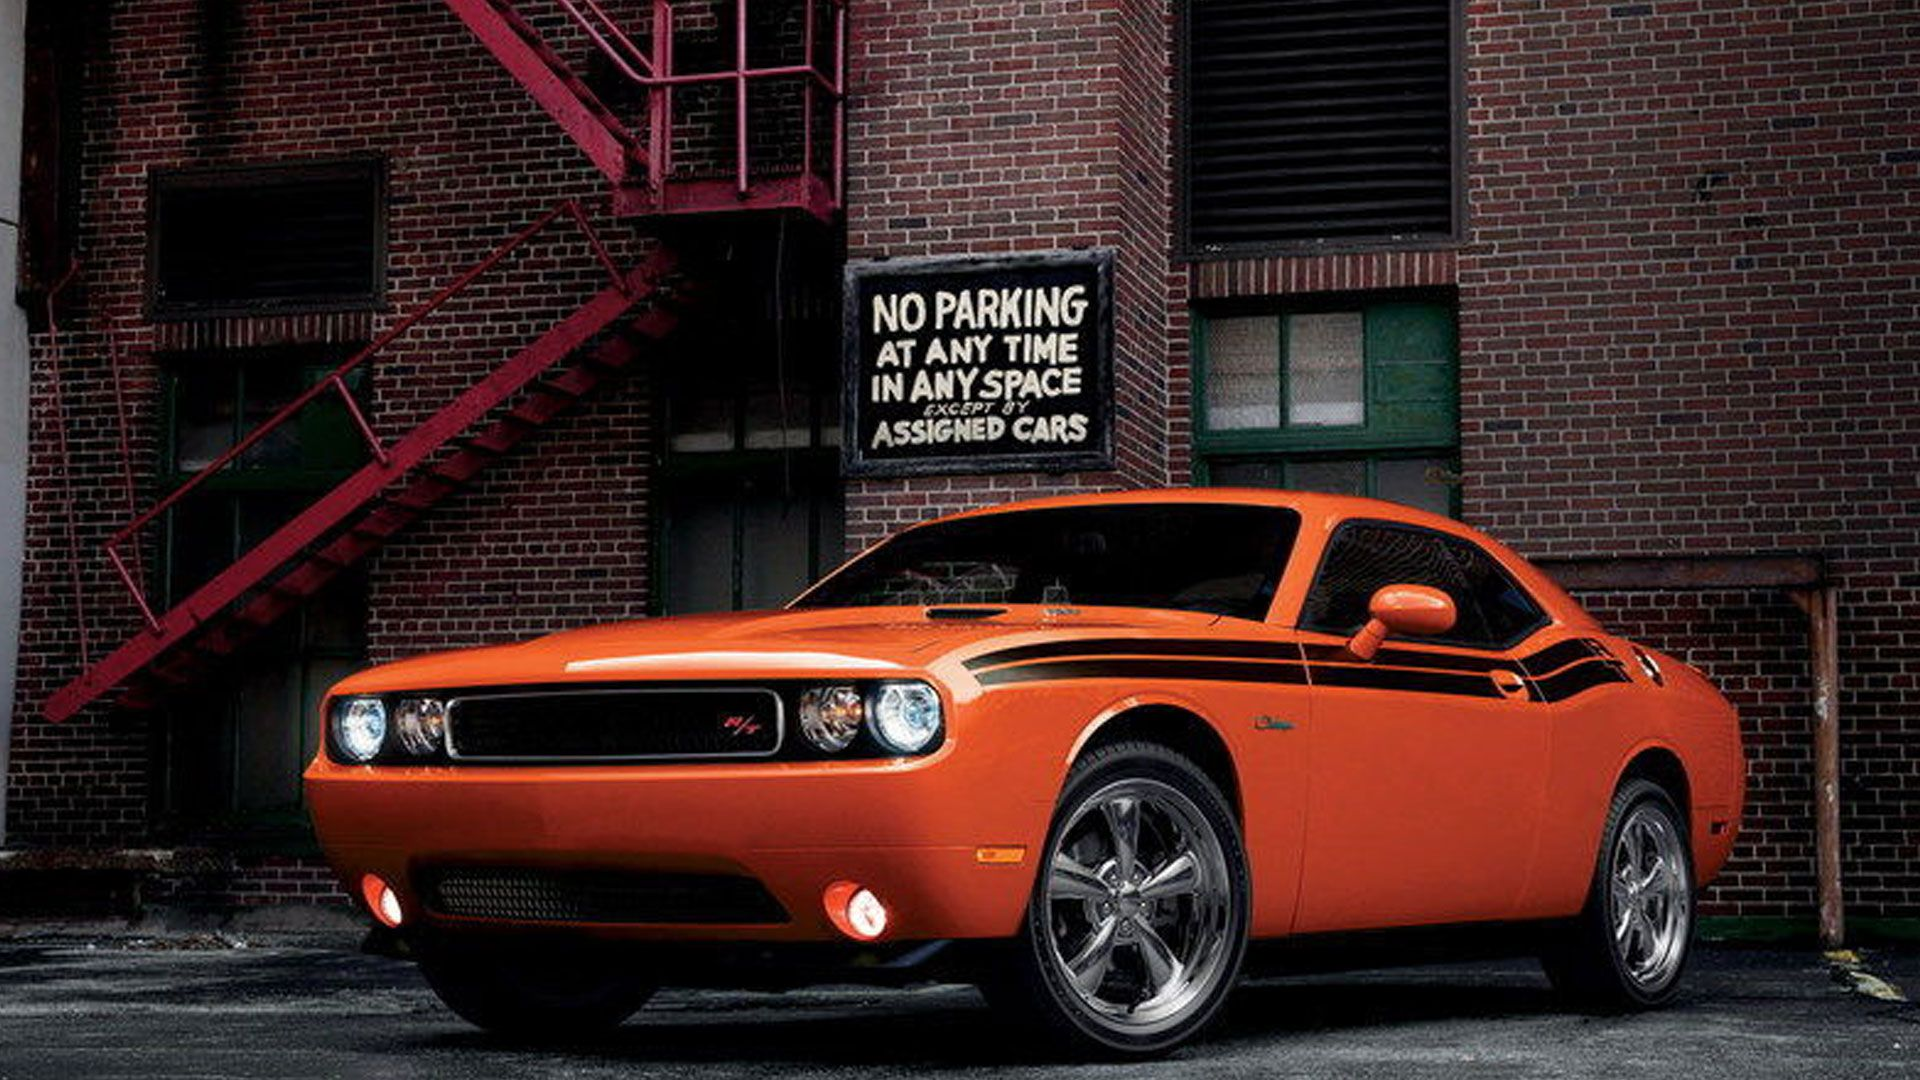 New and Used Dodge Challenger SRT8 For Sale - Visit our website ...